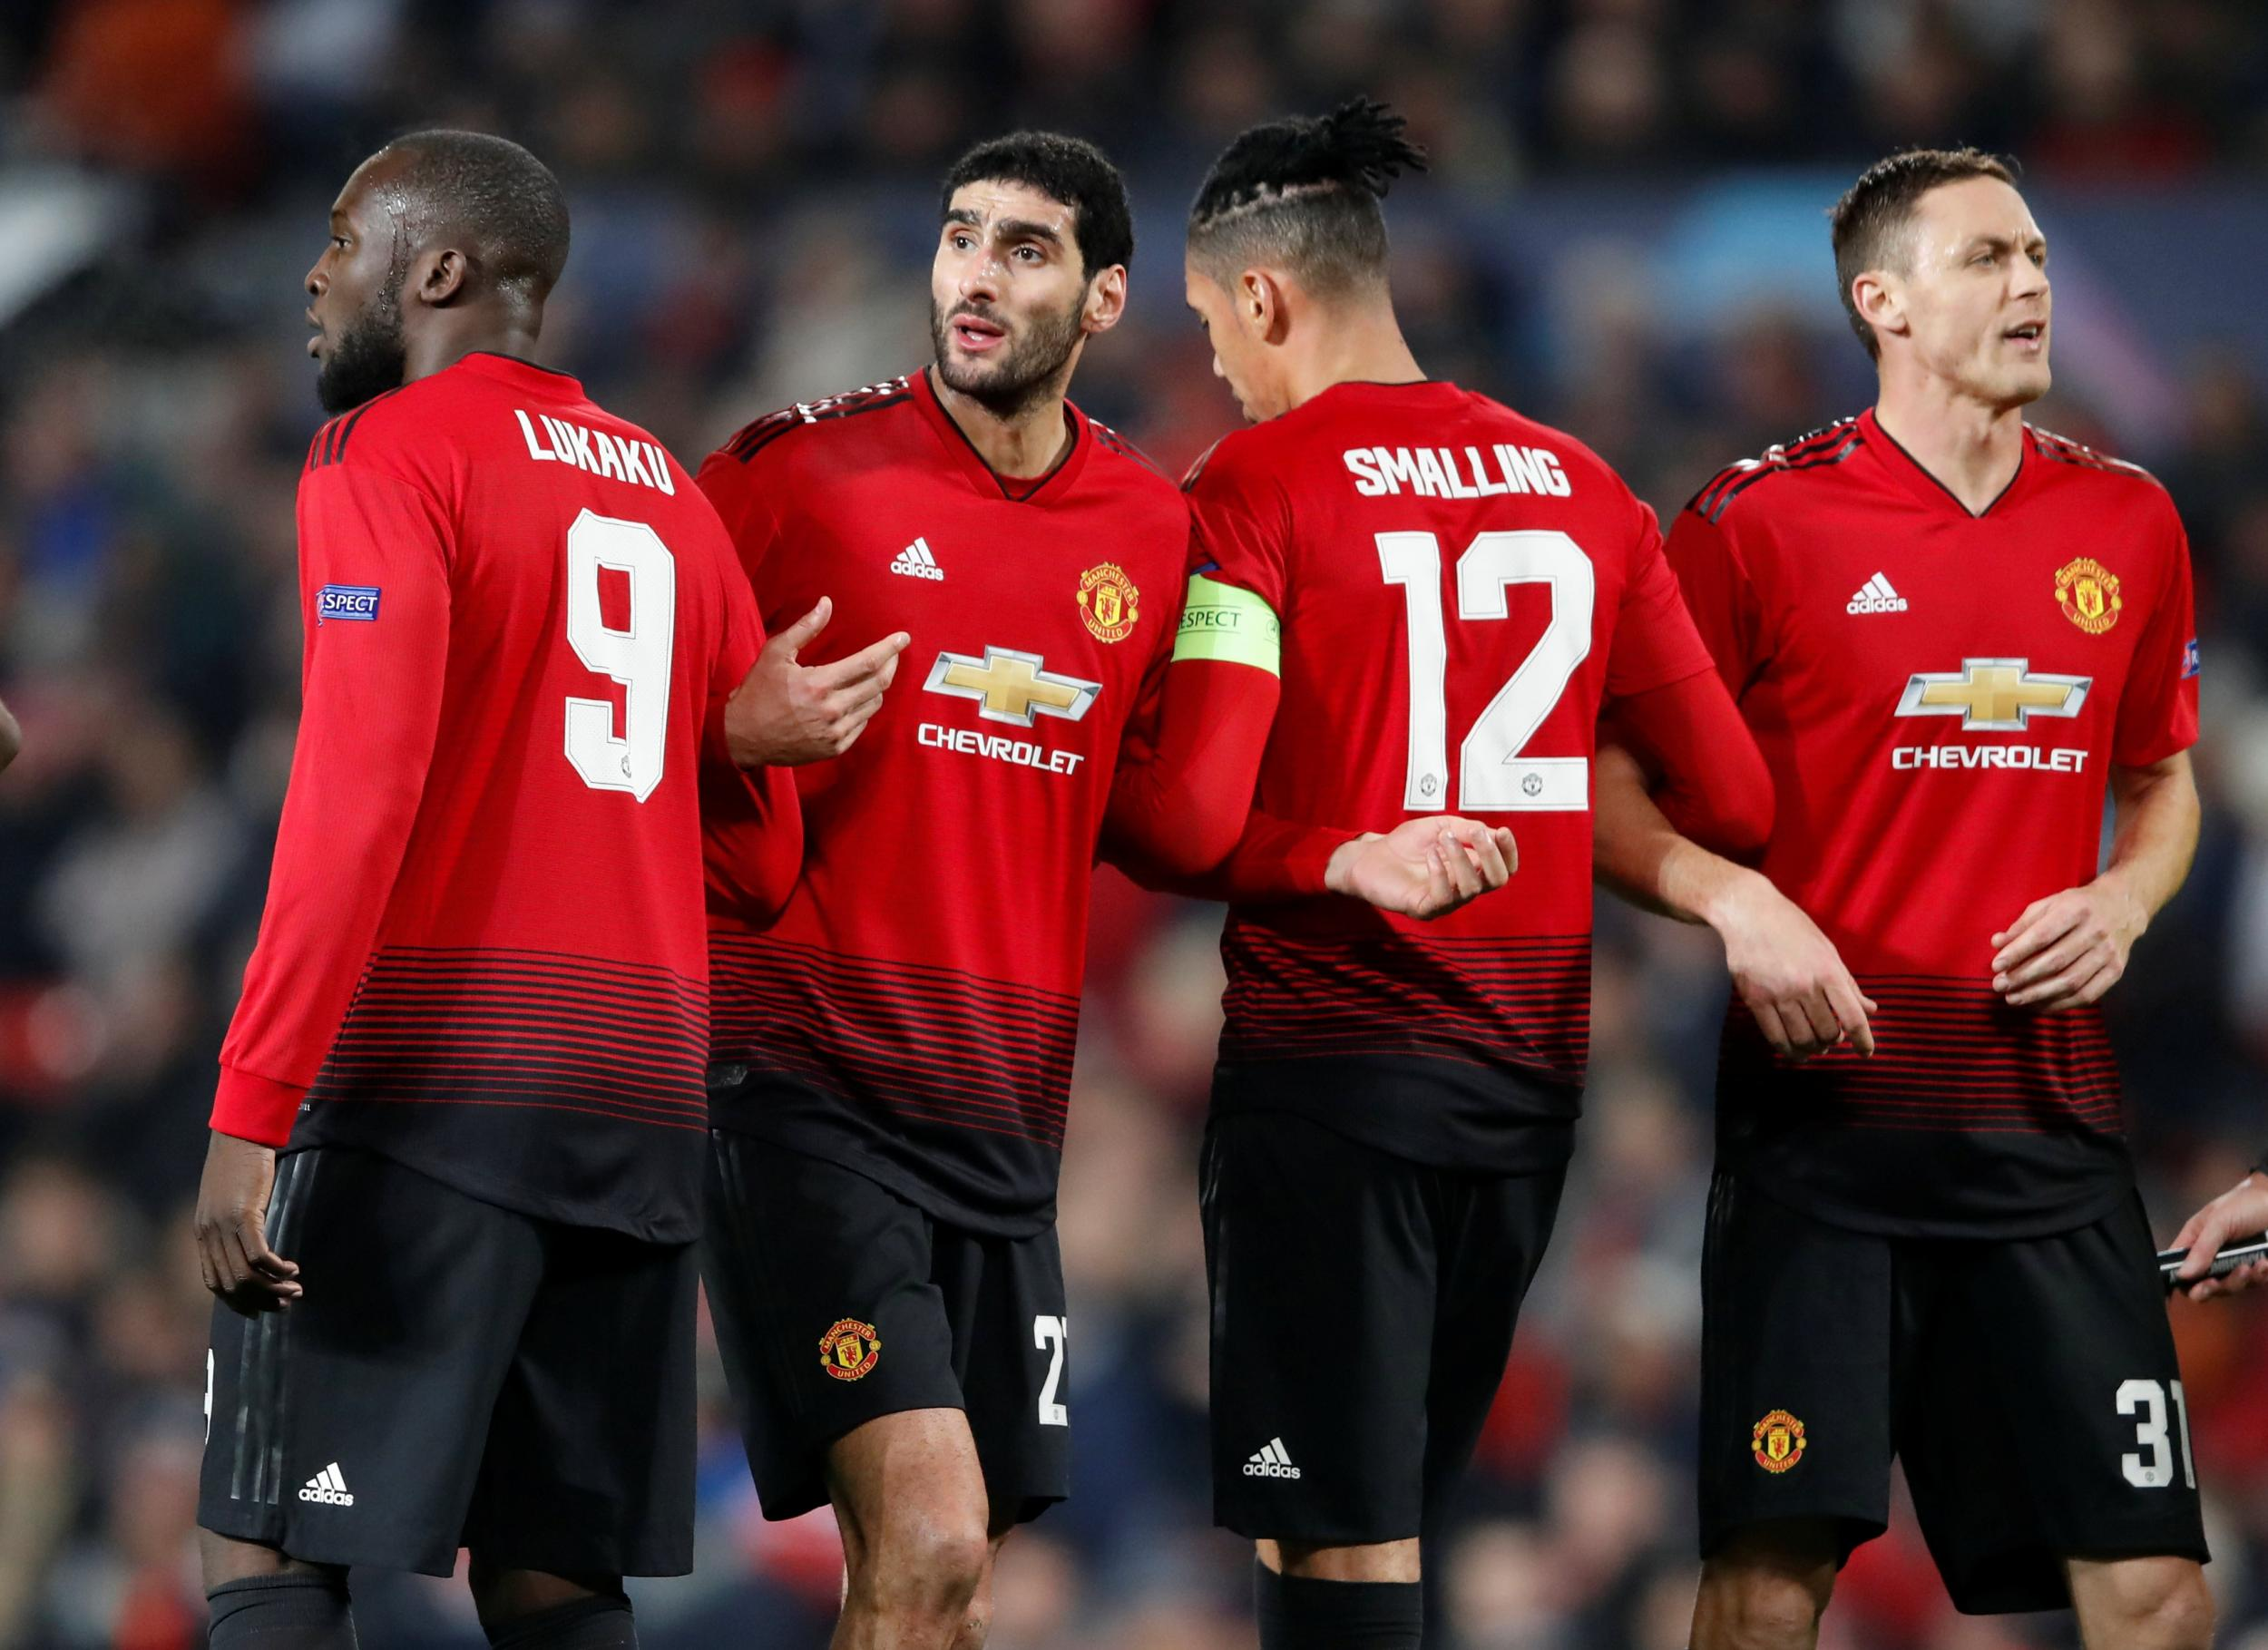 UEFA Champions League: Manchester United beat Young Boys 1-0 and scale through to Last 16